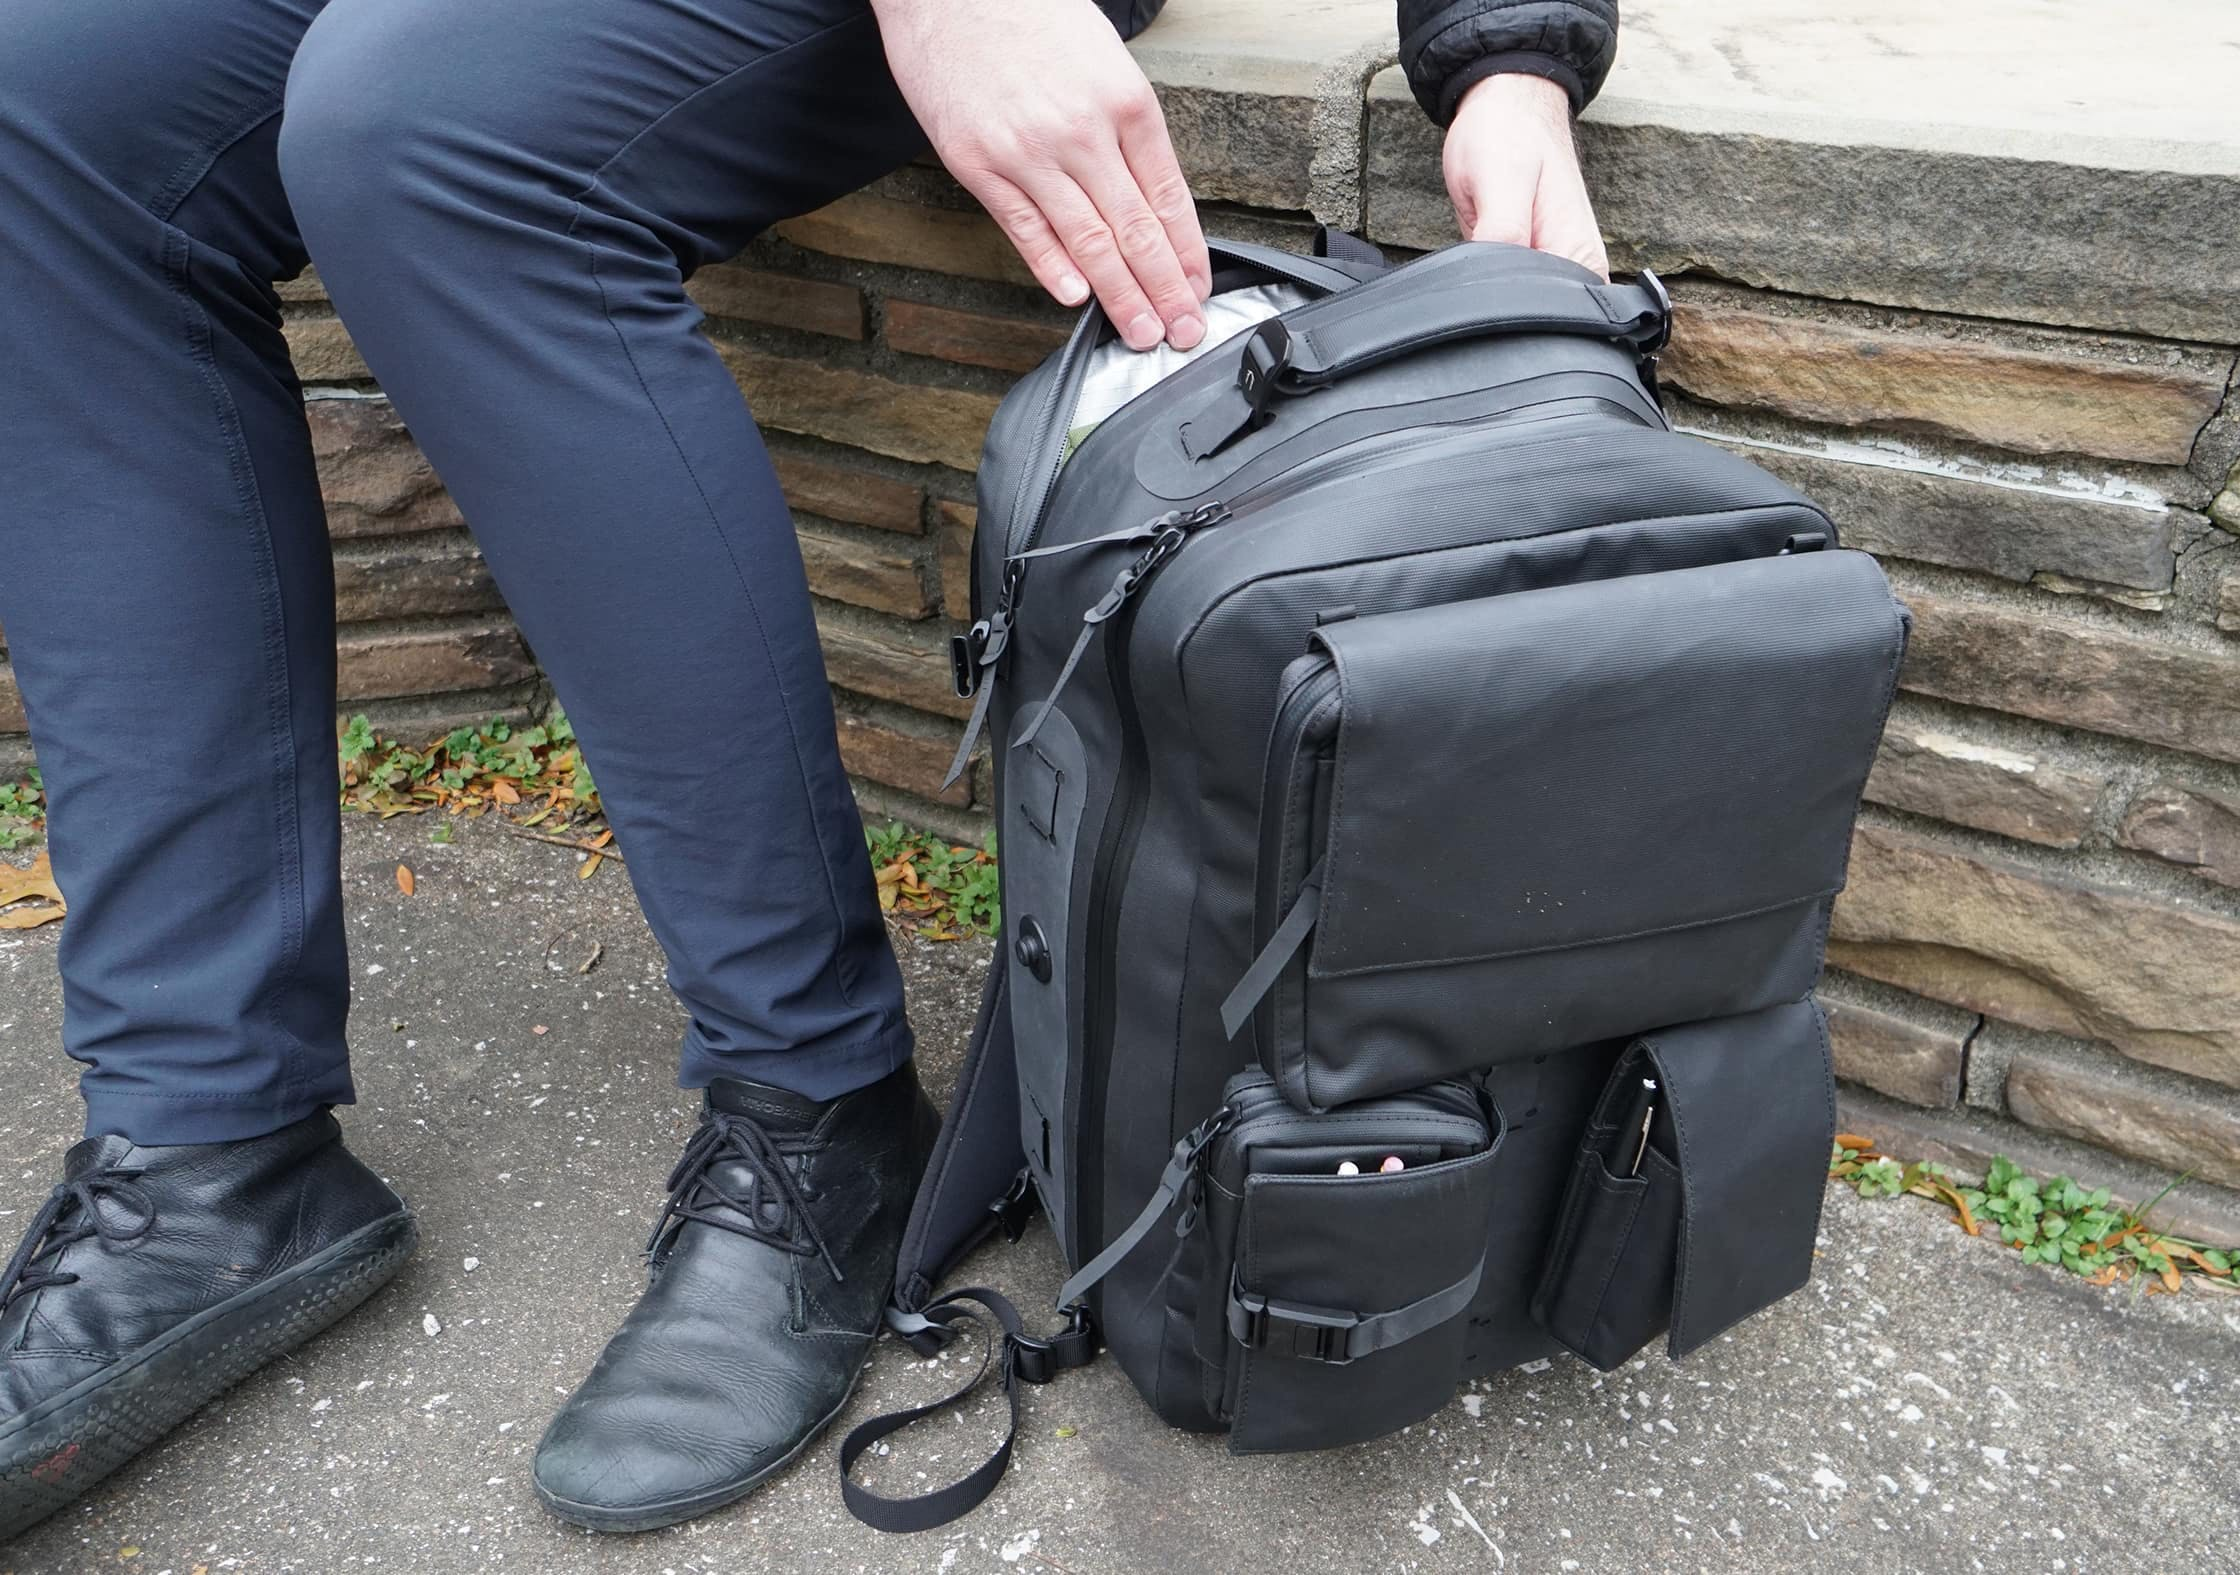 Black Ember Citadel Modular Backpack In Use 89c3f2c18b591